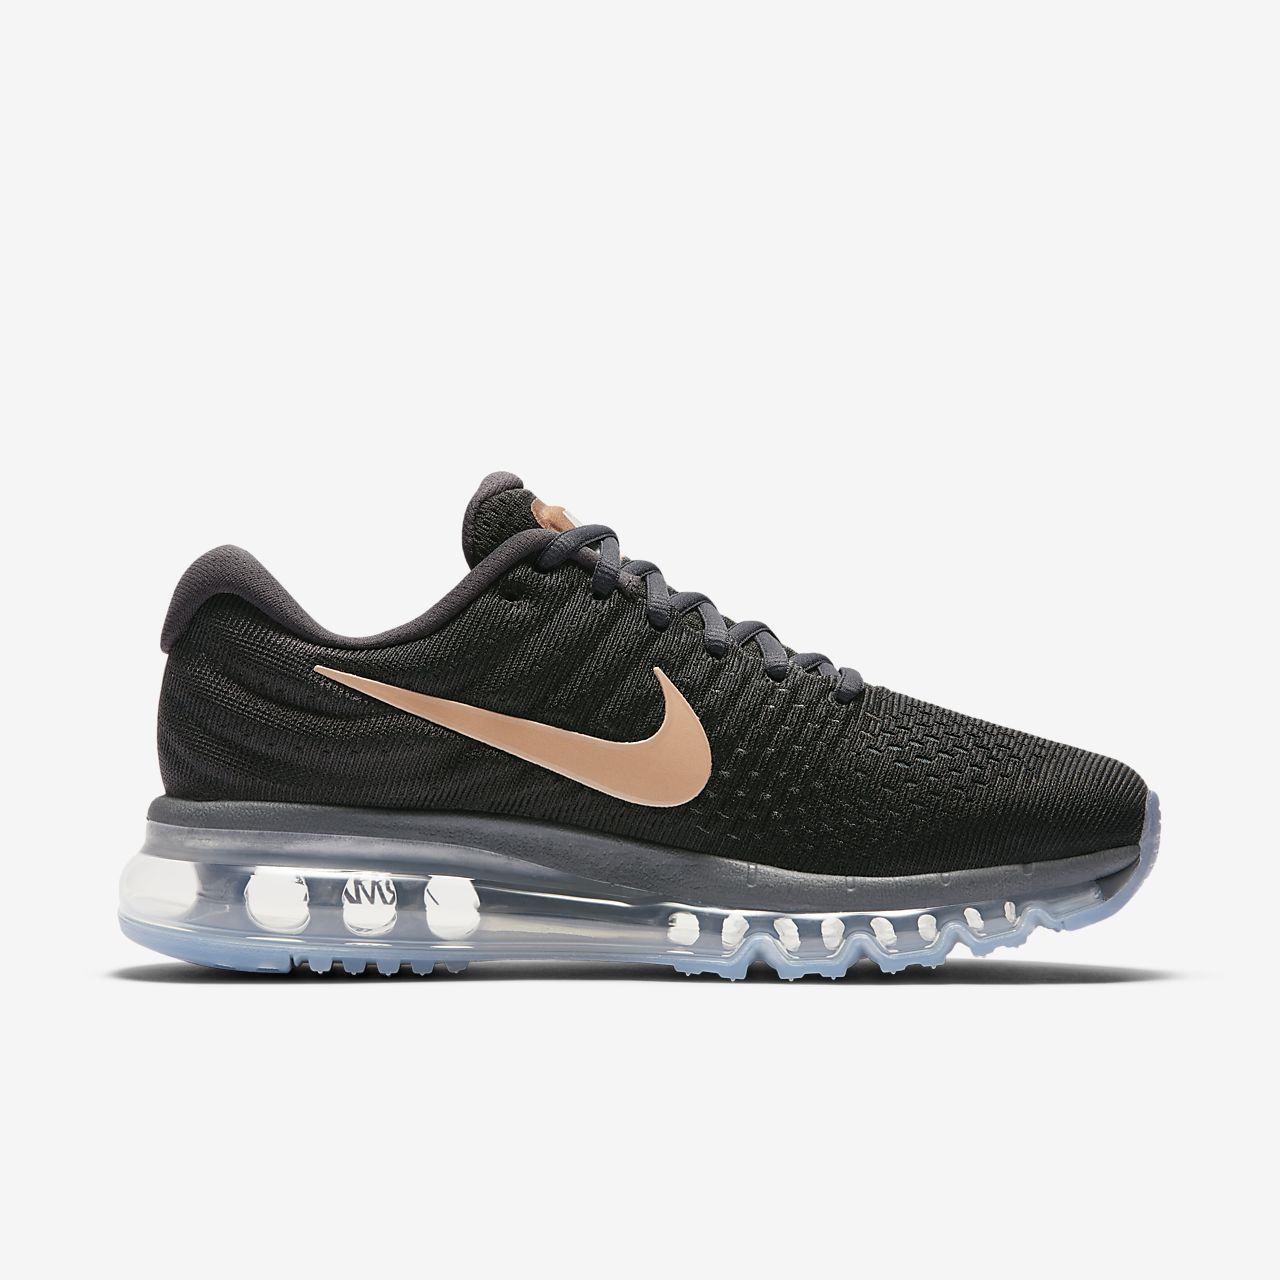 Are Nike Air Max Good Walking Shoes